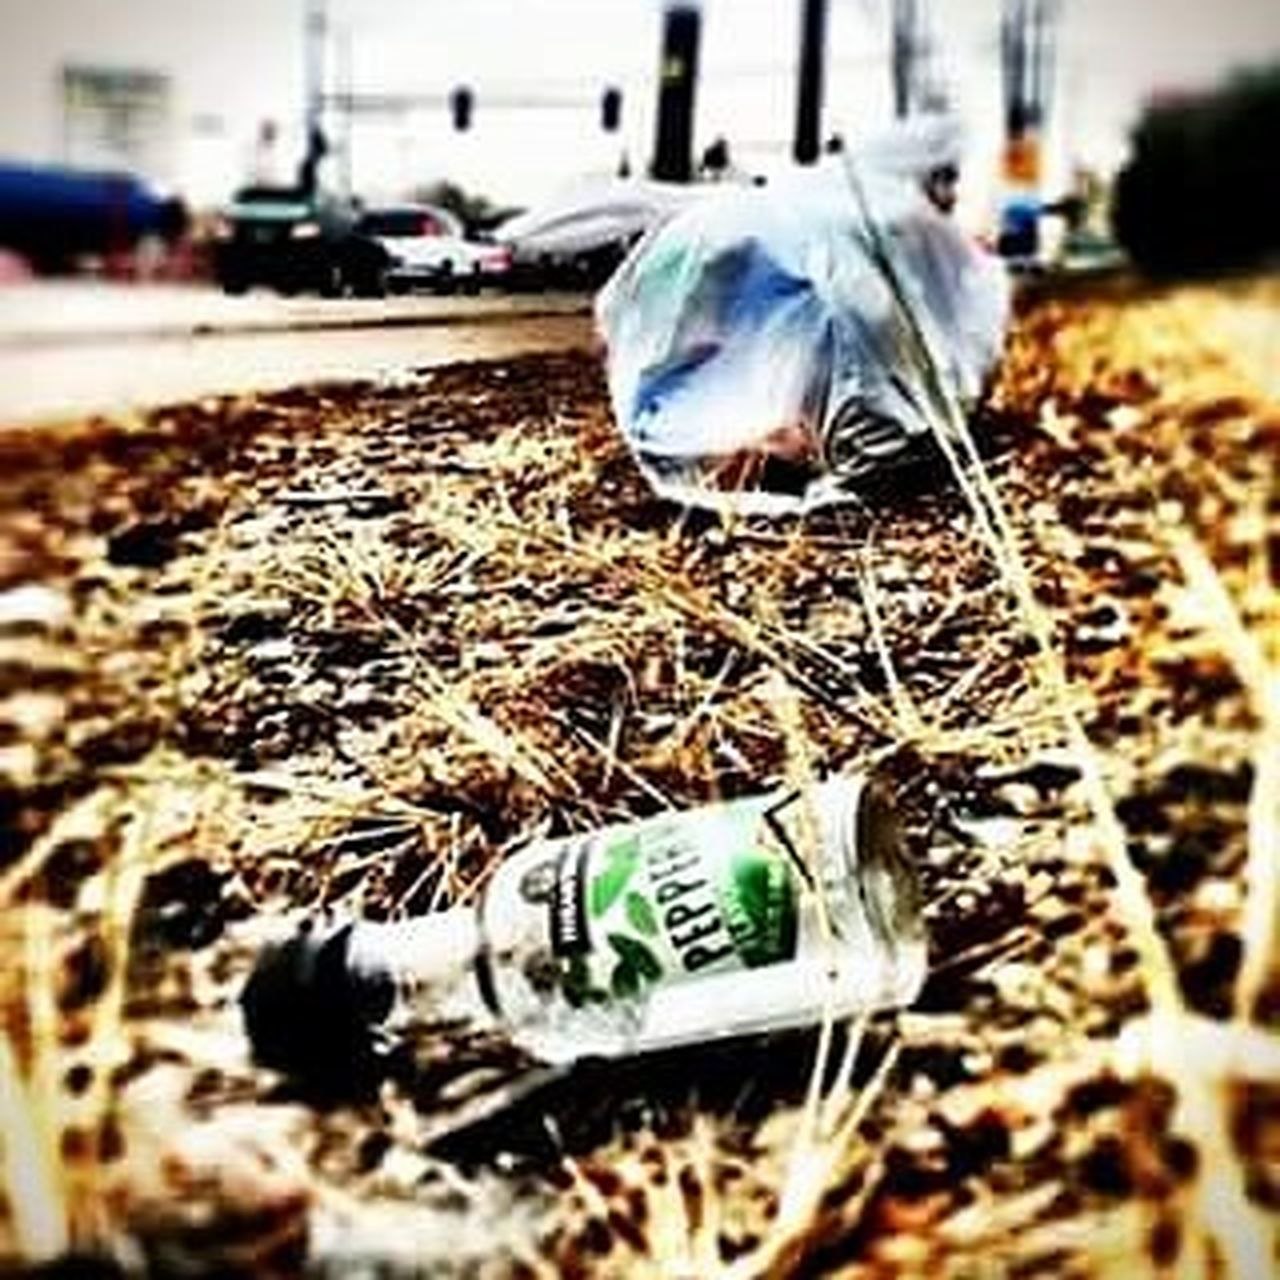 Art Artproject Trash Alcohol Denver 303 Peppermintschnapps Photo Photoedit Photoproject City Uglybeautiful Aurora Streetart Livelife Likeforlike Followforfollow Love Hate Lifesproblems Recover Litter